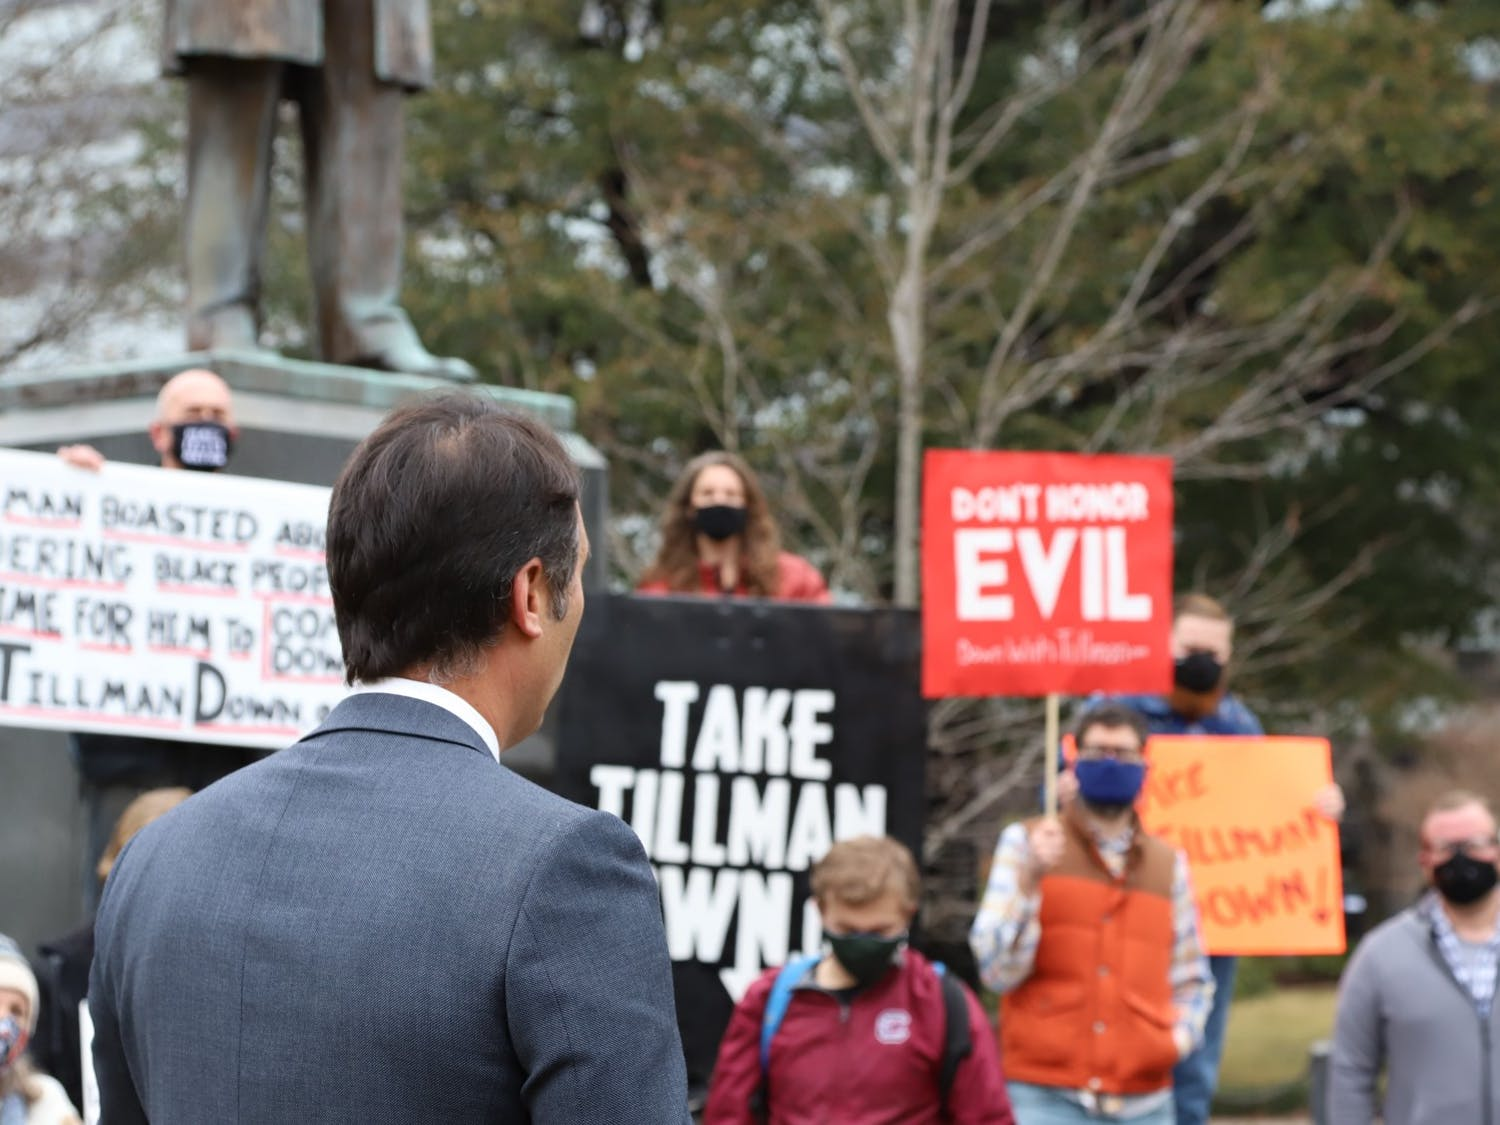 """State Representative Seth Rose faces the crowd of protesters and gives his thoughts on the Benjamin Tillman statue. Rose often referred to Benjamin Tillman as """"Pitchfork Tillman""""."""